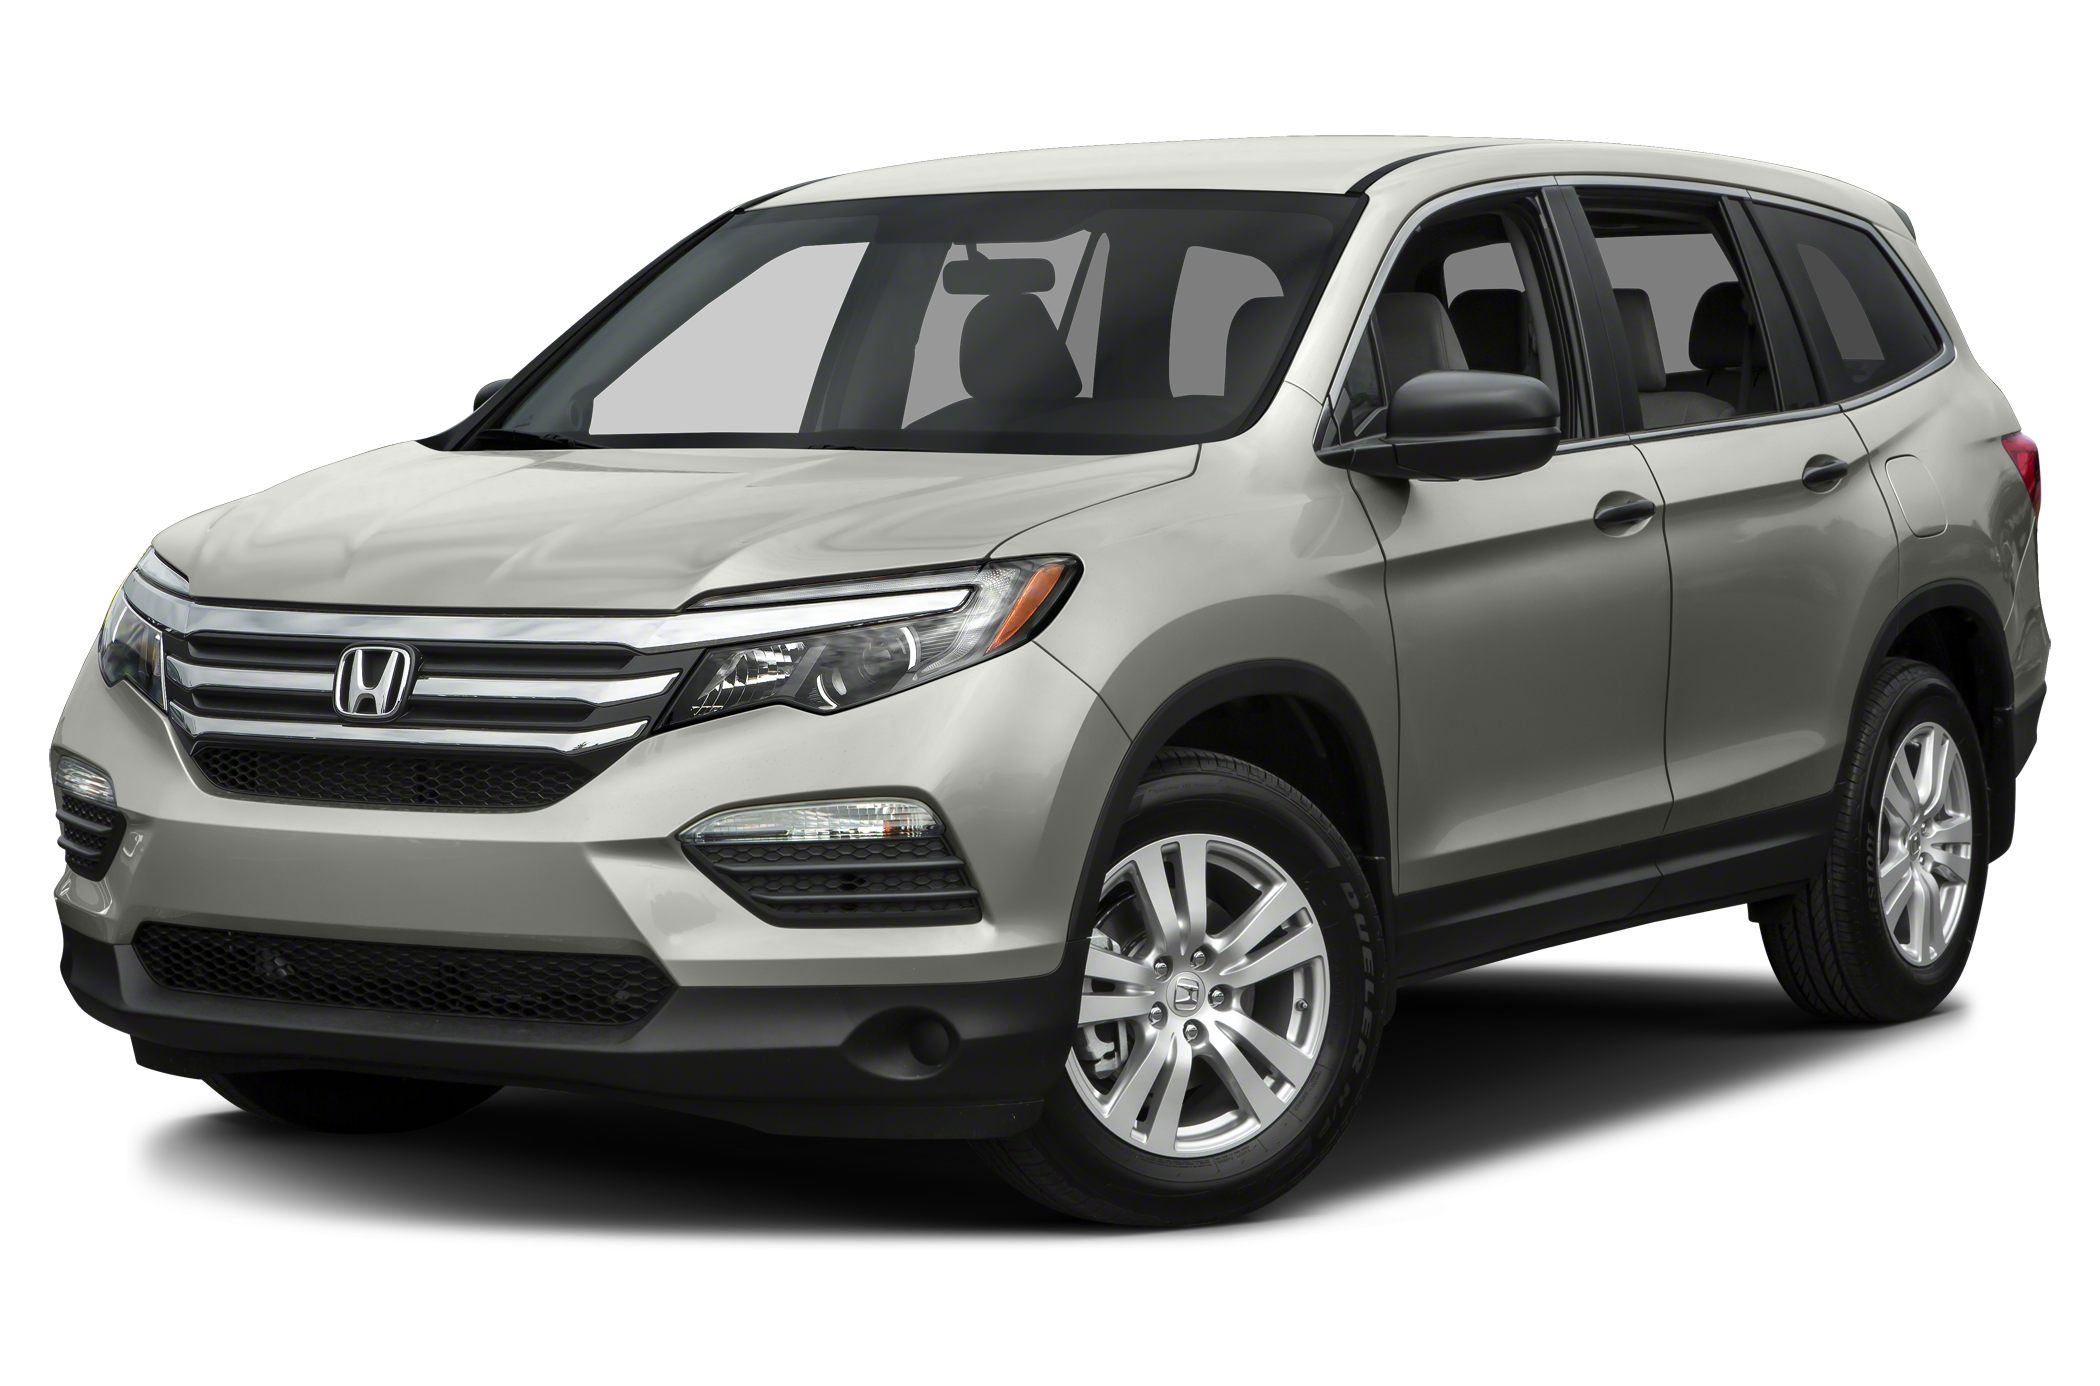 2016 Honda Pilot is brand's first non-hybrid with stop-start